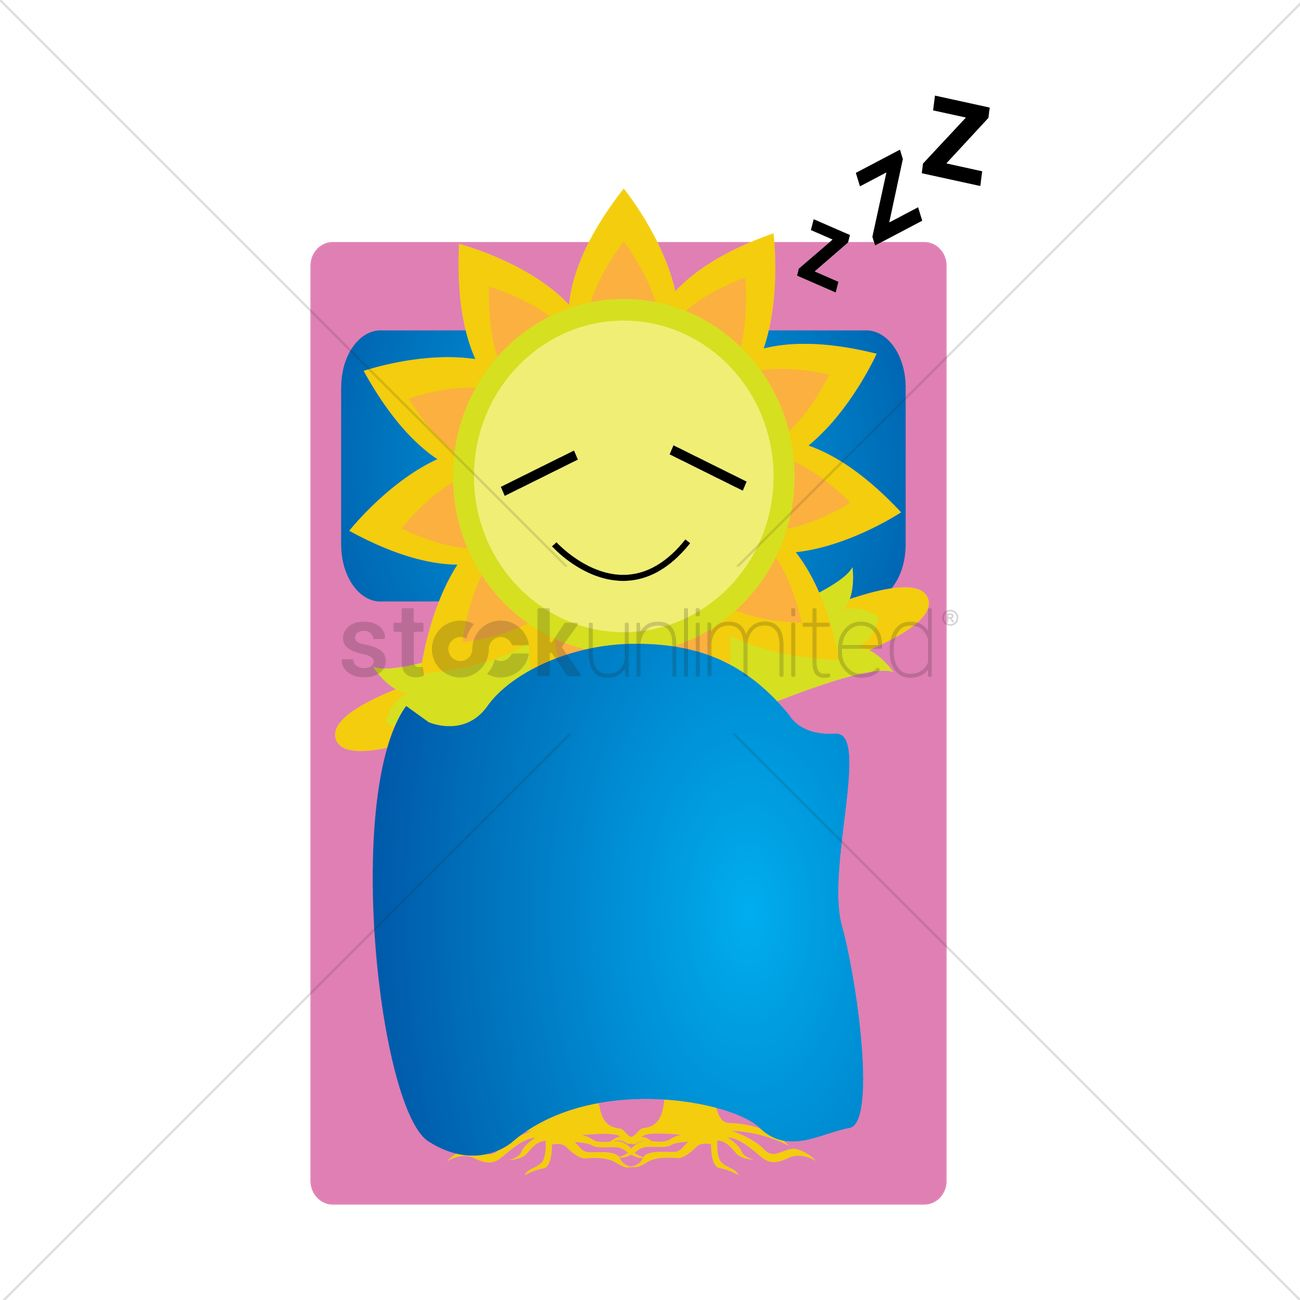 Sunflower Character Sleeping Vector Image 1427714 Stockunlimited